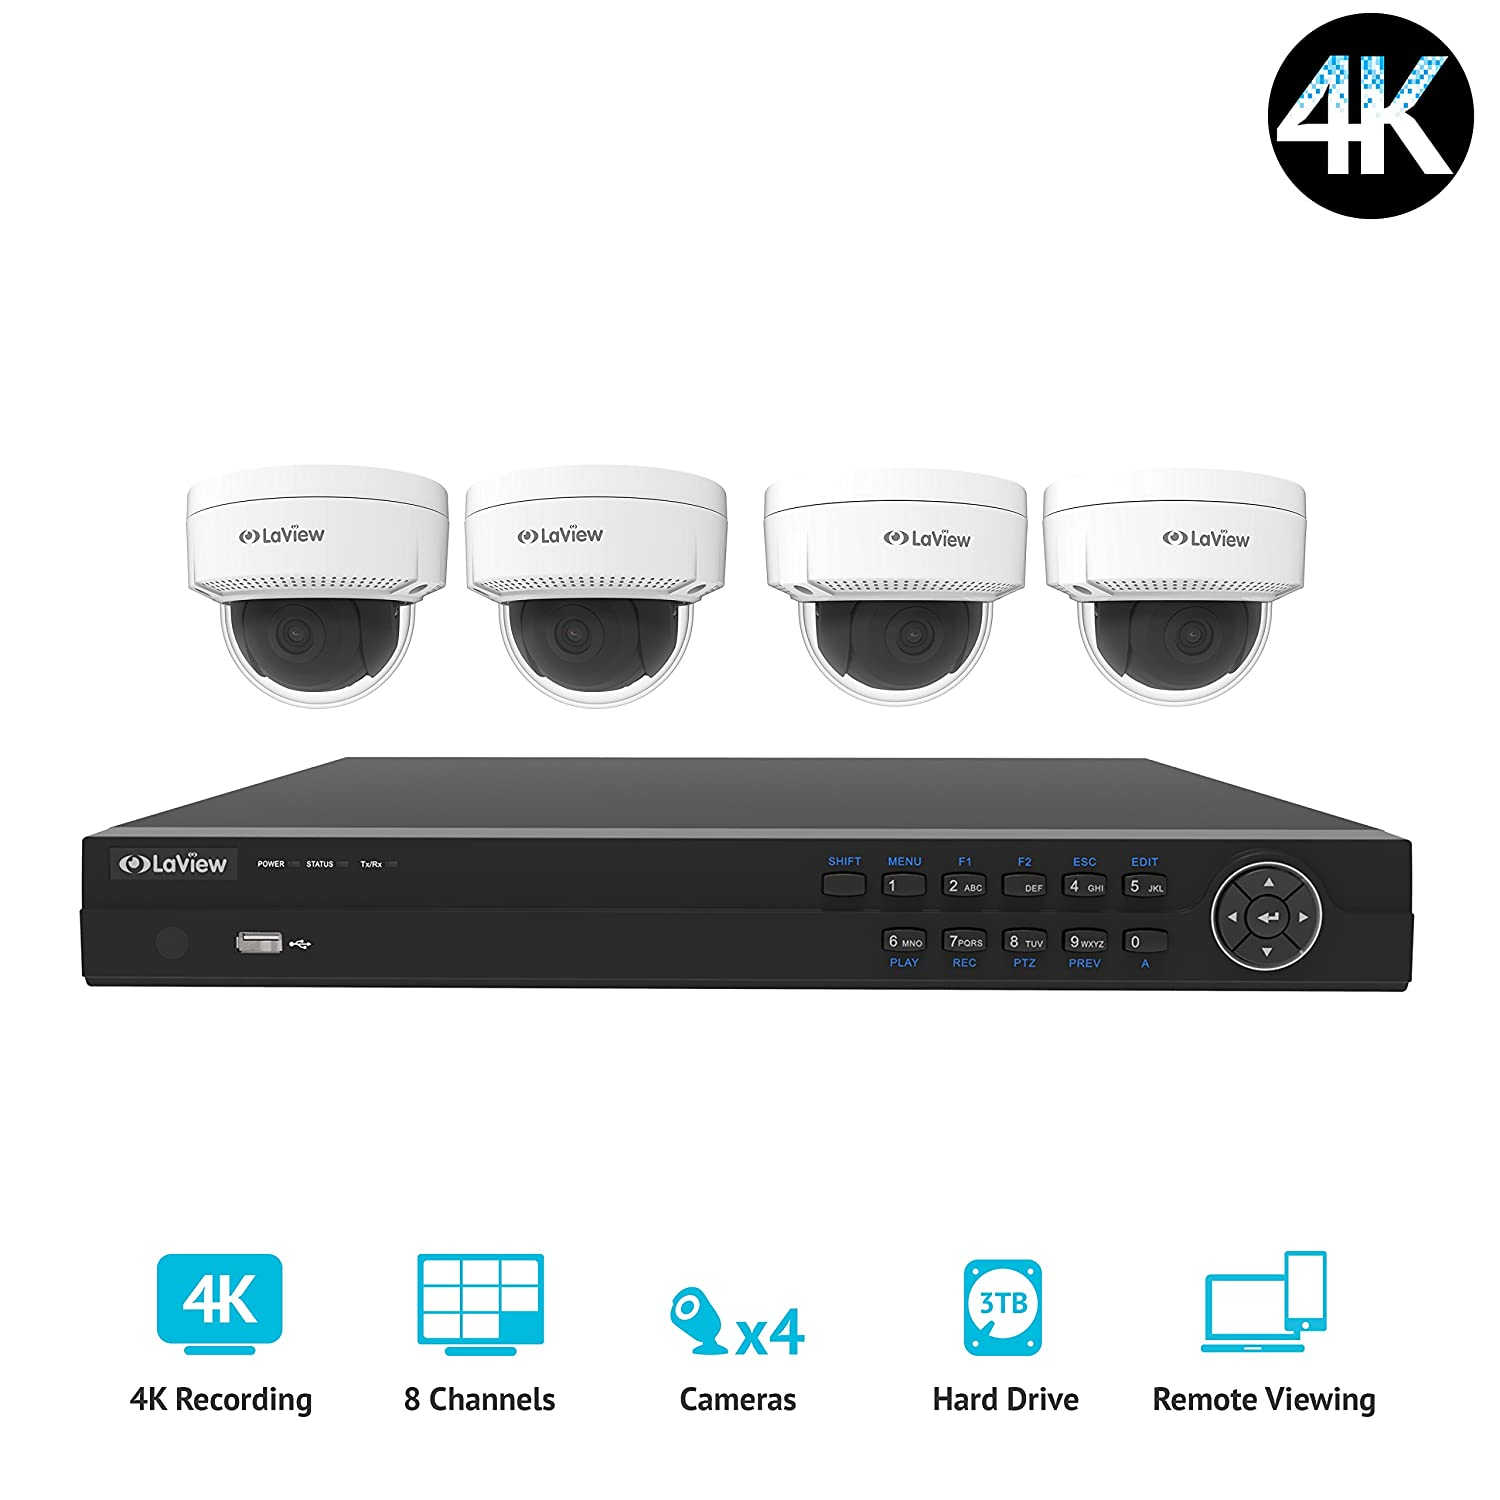 8 Channel PoE 4K NVR Security Camera System Pre-Installed 4TB Hard Drive LV-KNY48E84D404-T4 100ft Night Vision LaView 4-Megapixel 4 4MP Dome IP Surveillance Cameras 2688 x 1520